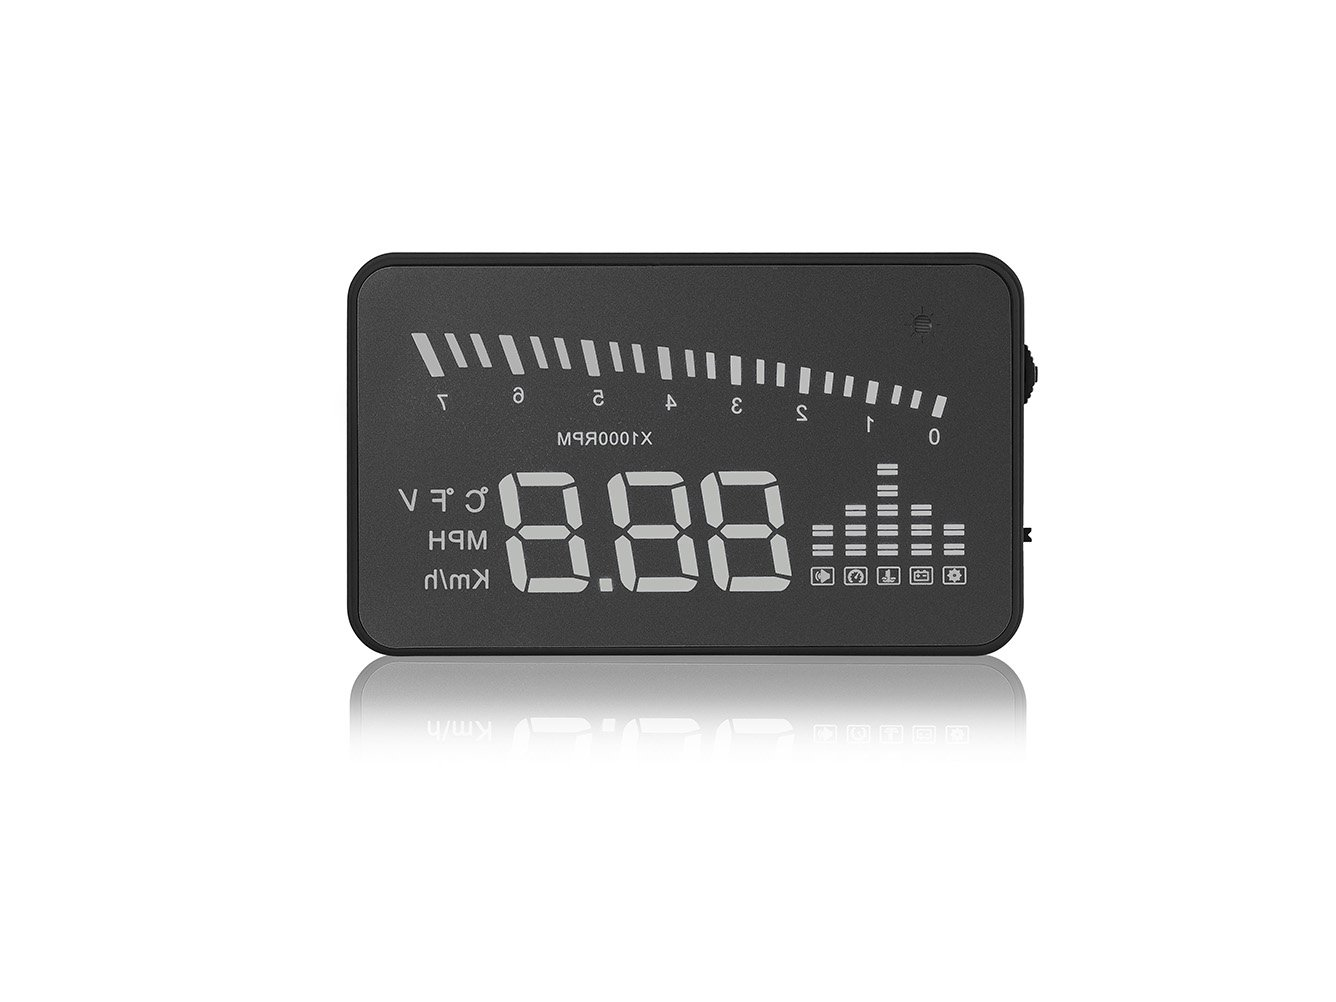 Arpenkin Hud X5 Obd2 3 Universal Multi Function Vehicle 03 Tahoe Wiring Diagram Mounted Heads Up Display For Cars Windshield Compatible With Obd Ii Eobd System Model